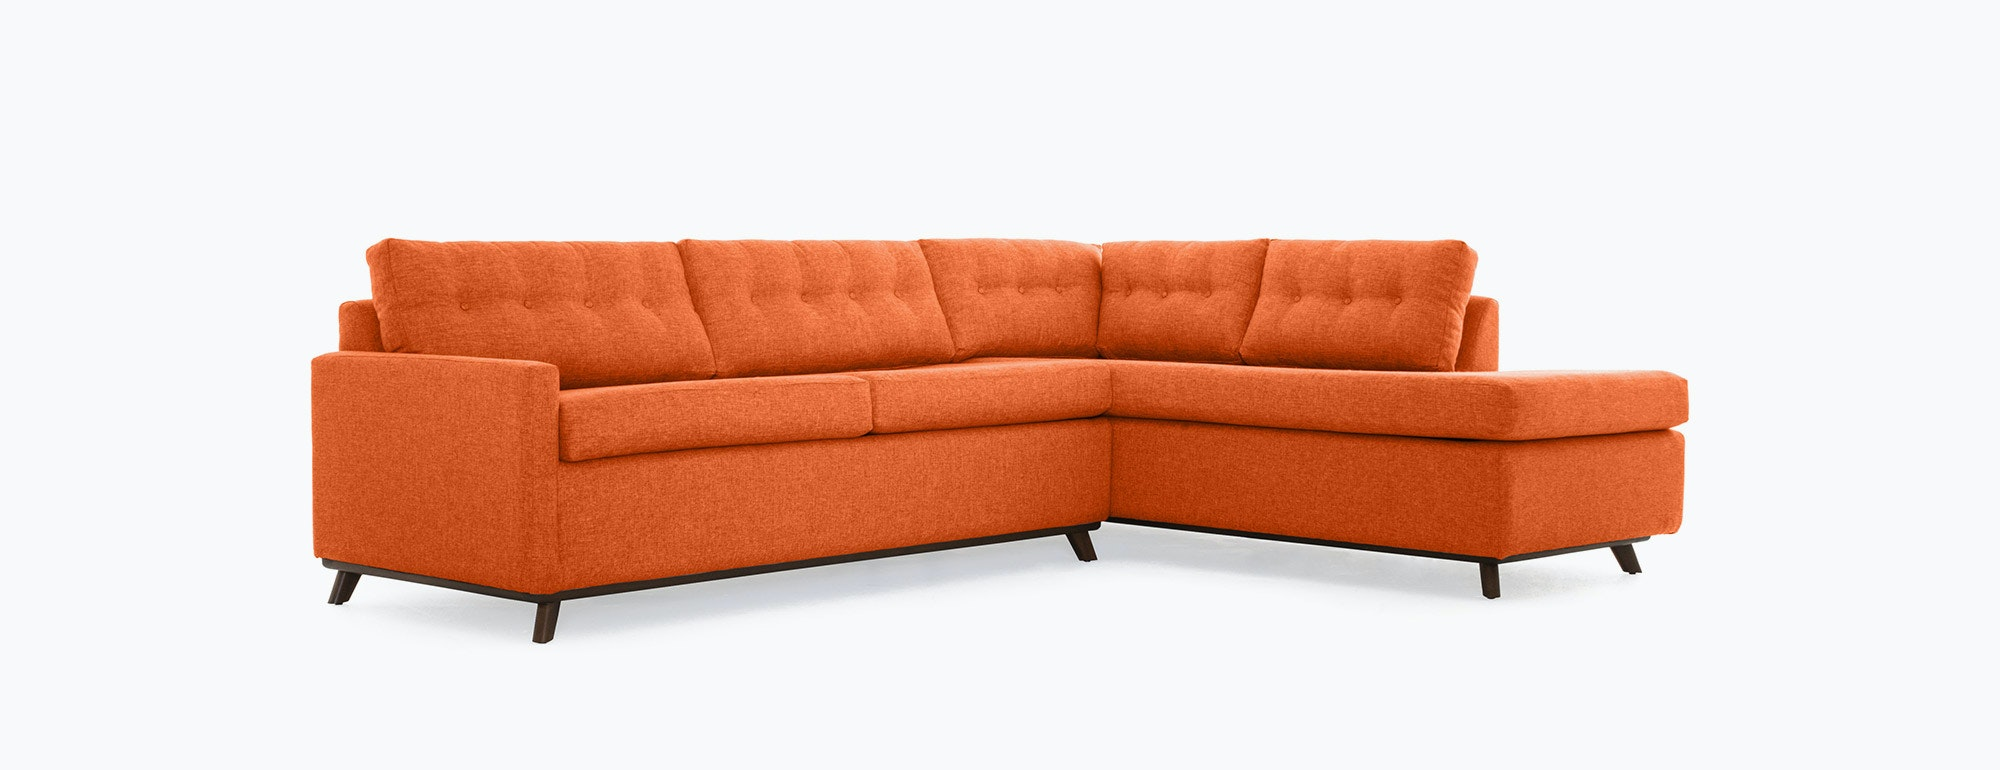 cool with lounge regarding sleeper is sofa chaise sectional leather